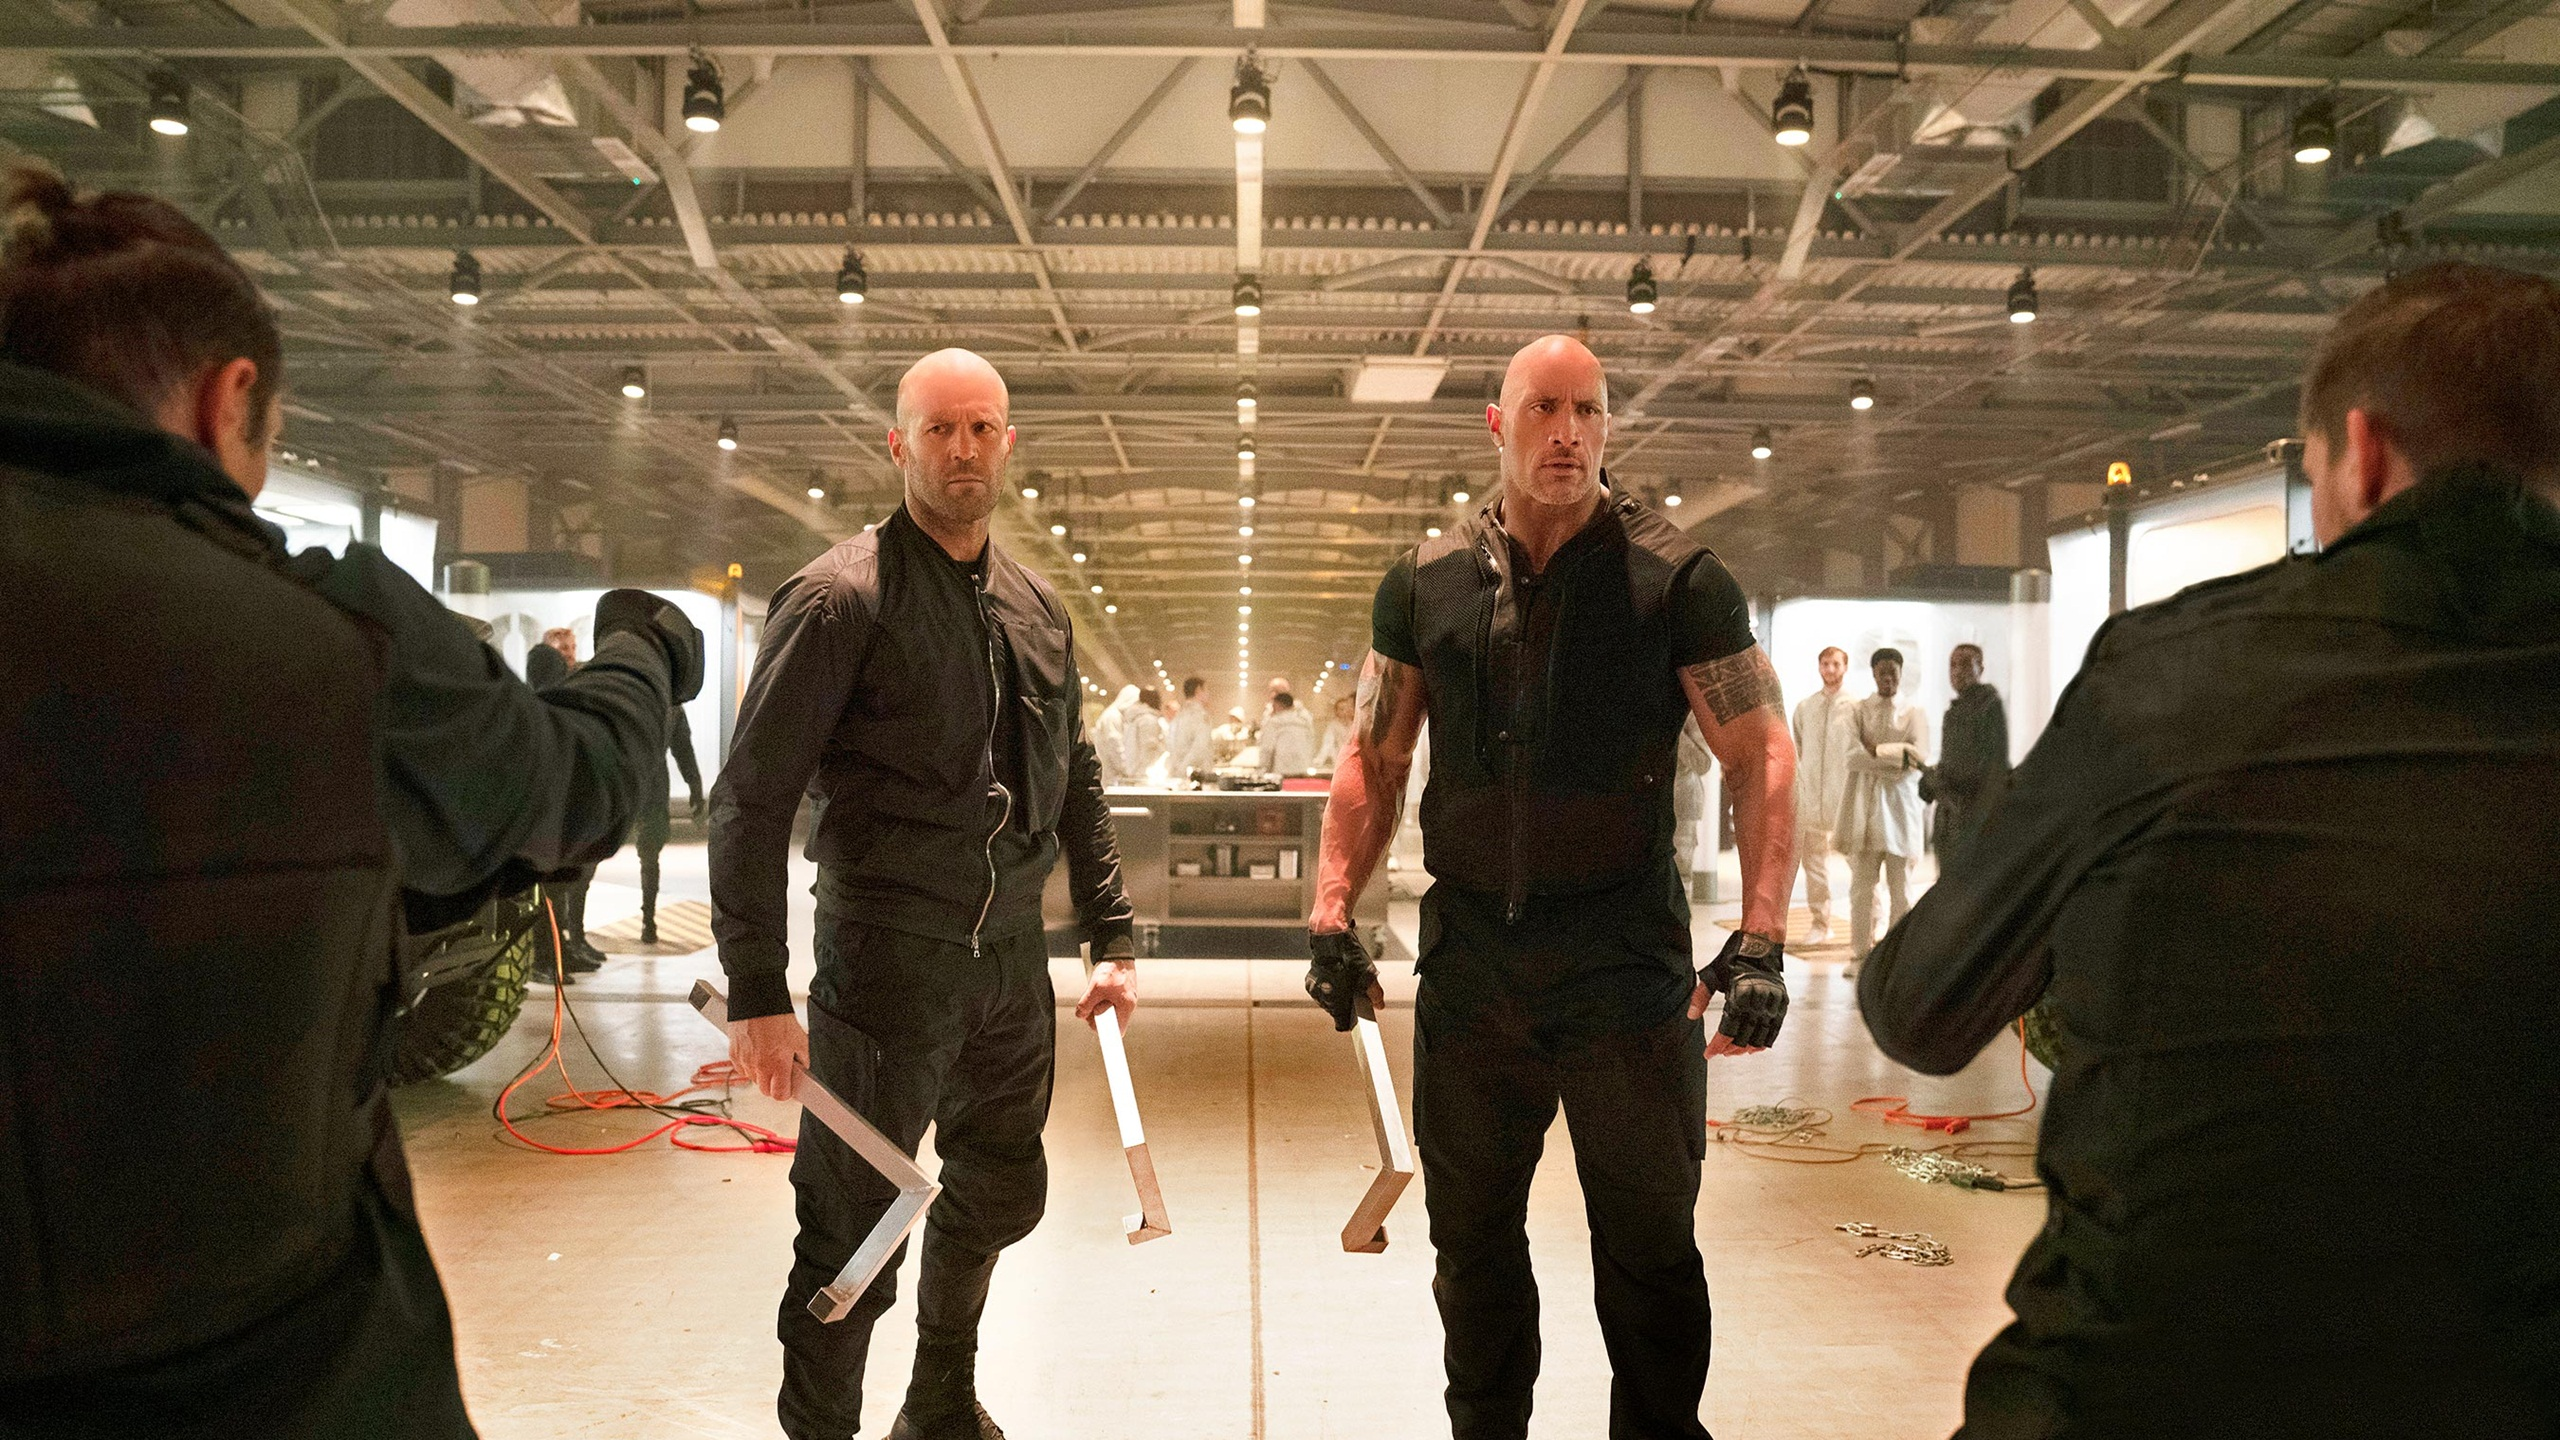 Fast And Furious 8 Wallpaper Hd 2560x1440 Wallpapers Hd Backgrounds Images Pics Photos